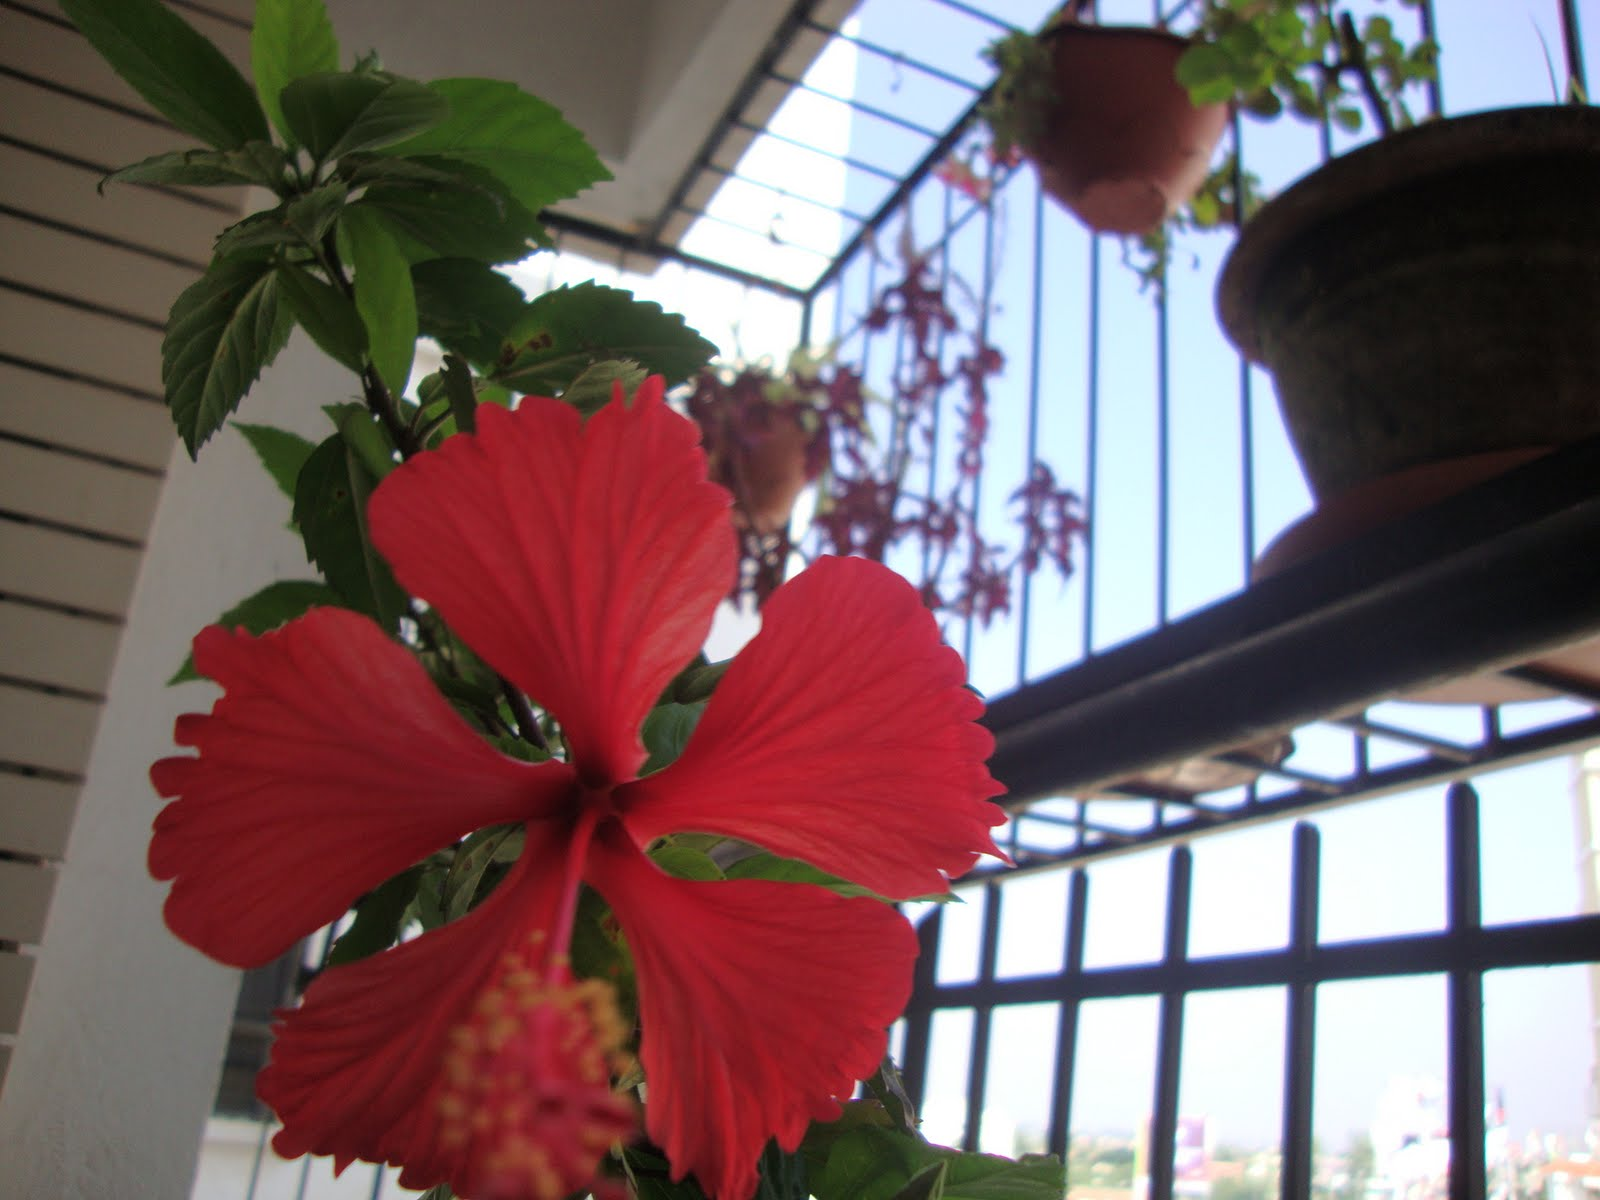 My balcony garden hibiscus experience part 1 some tips on maintaining the hibiscus they need to be watered and fertilized regularly two spoonfuls of organic fertilizer and bone meal every fortnight izmirmasajfo